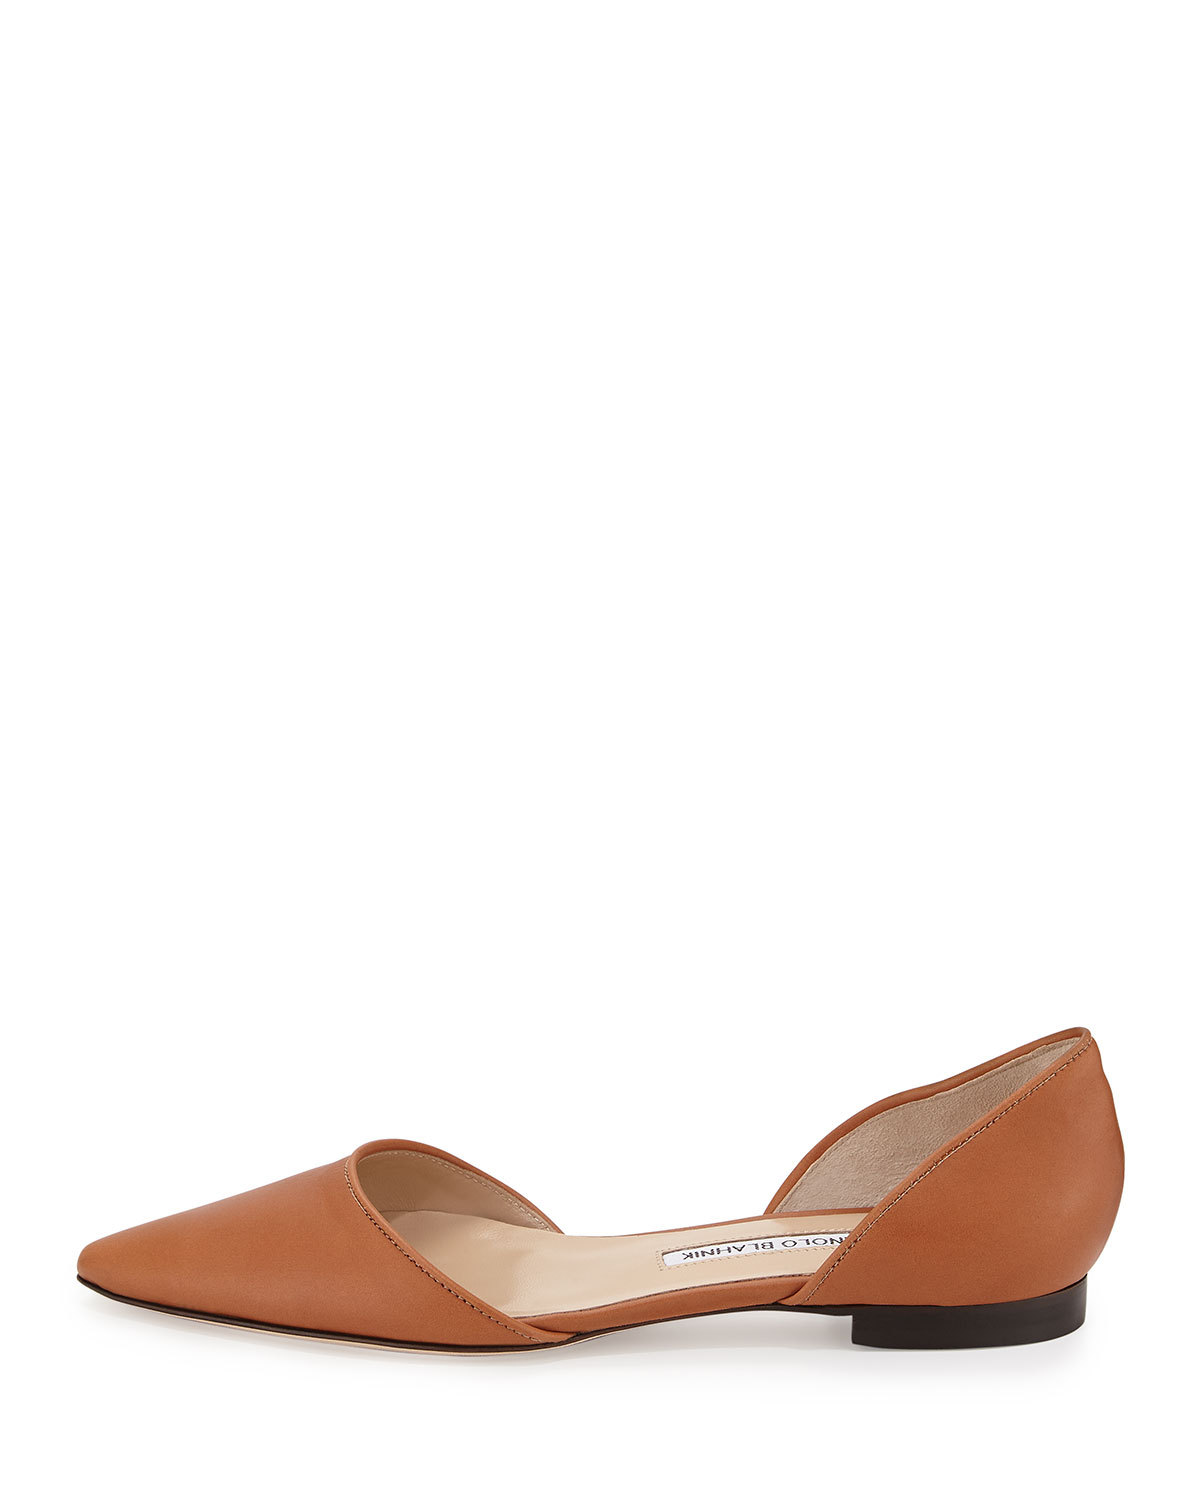 Lyst Manolo Blahnik Soussaba Leather D Orsay Flats In Brown